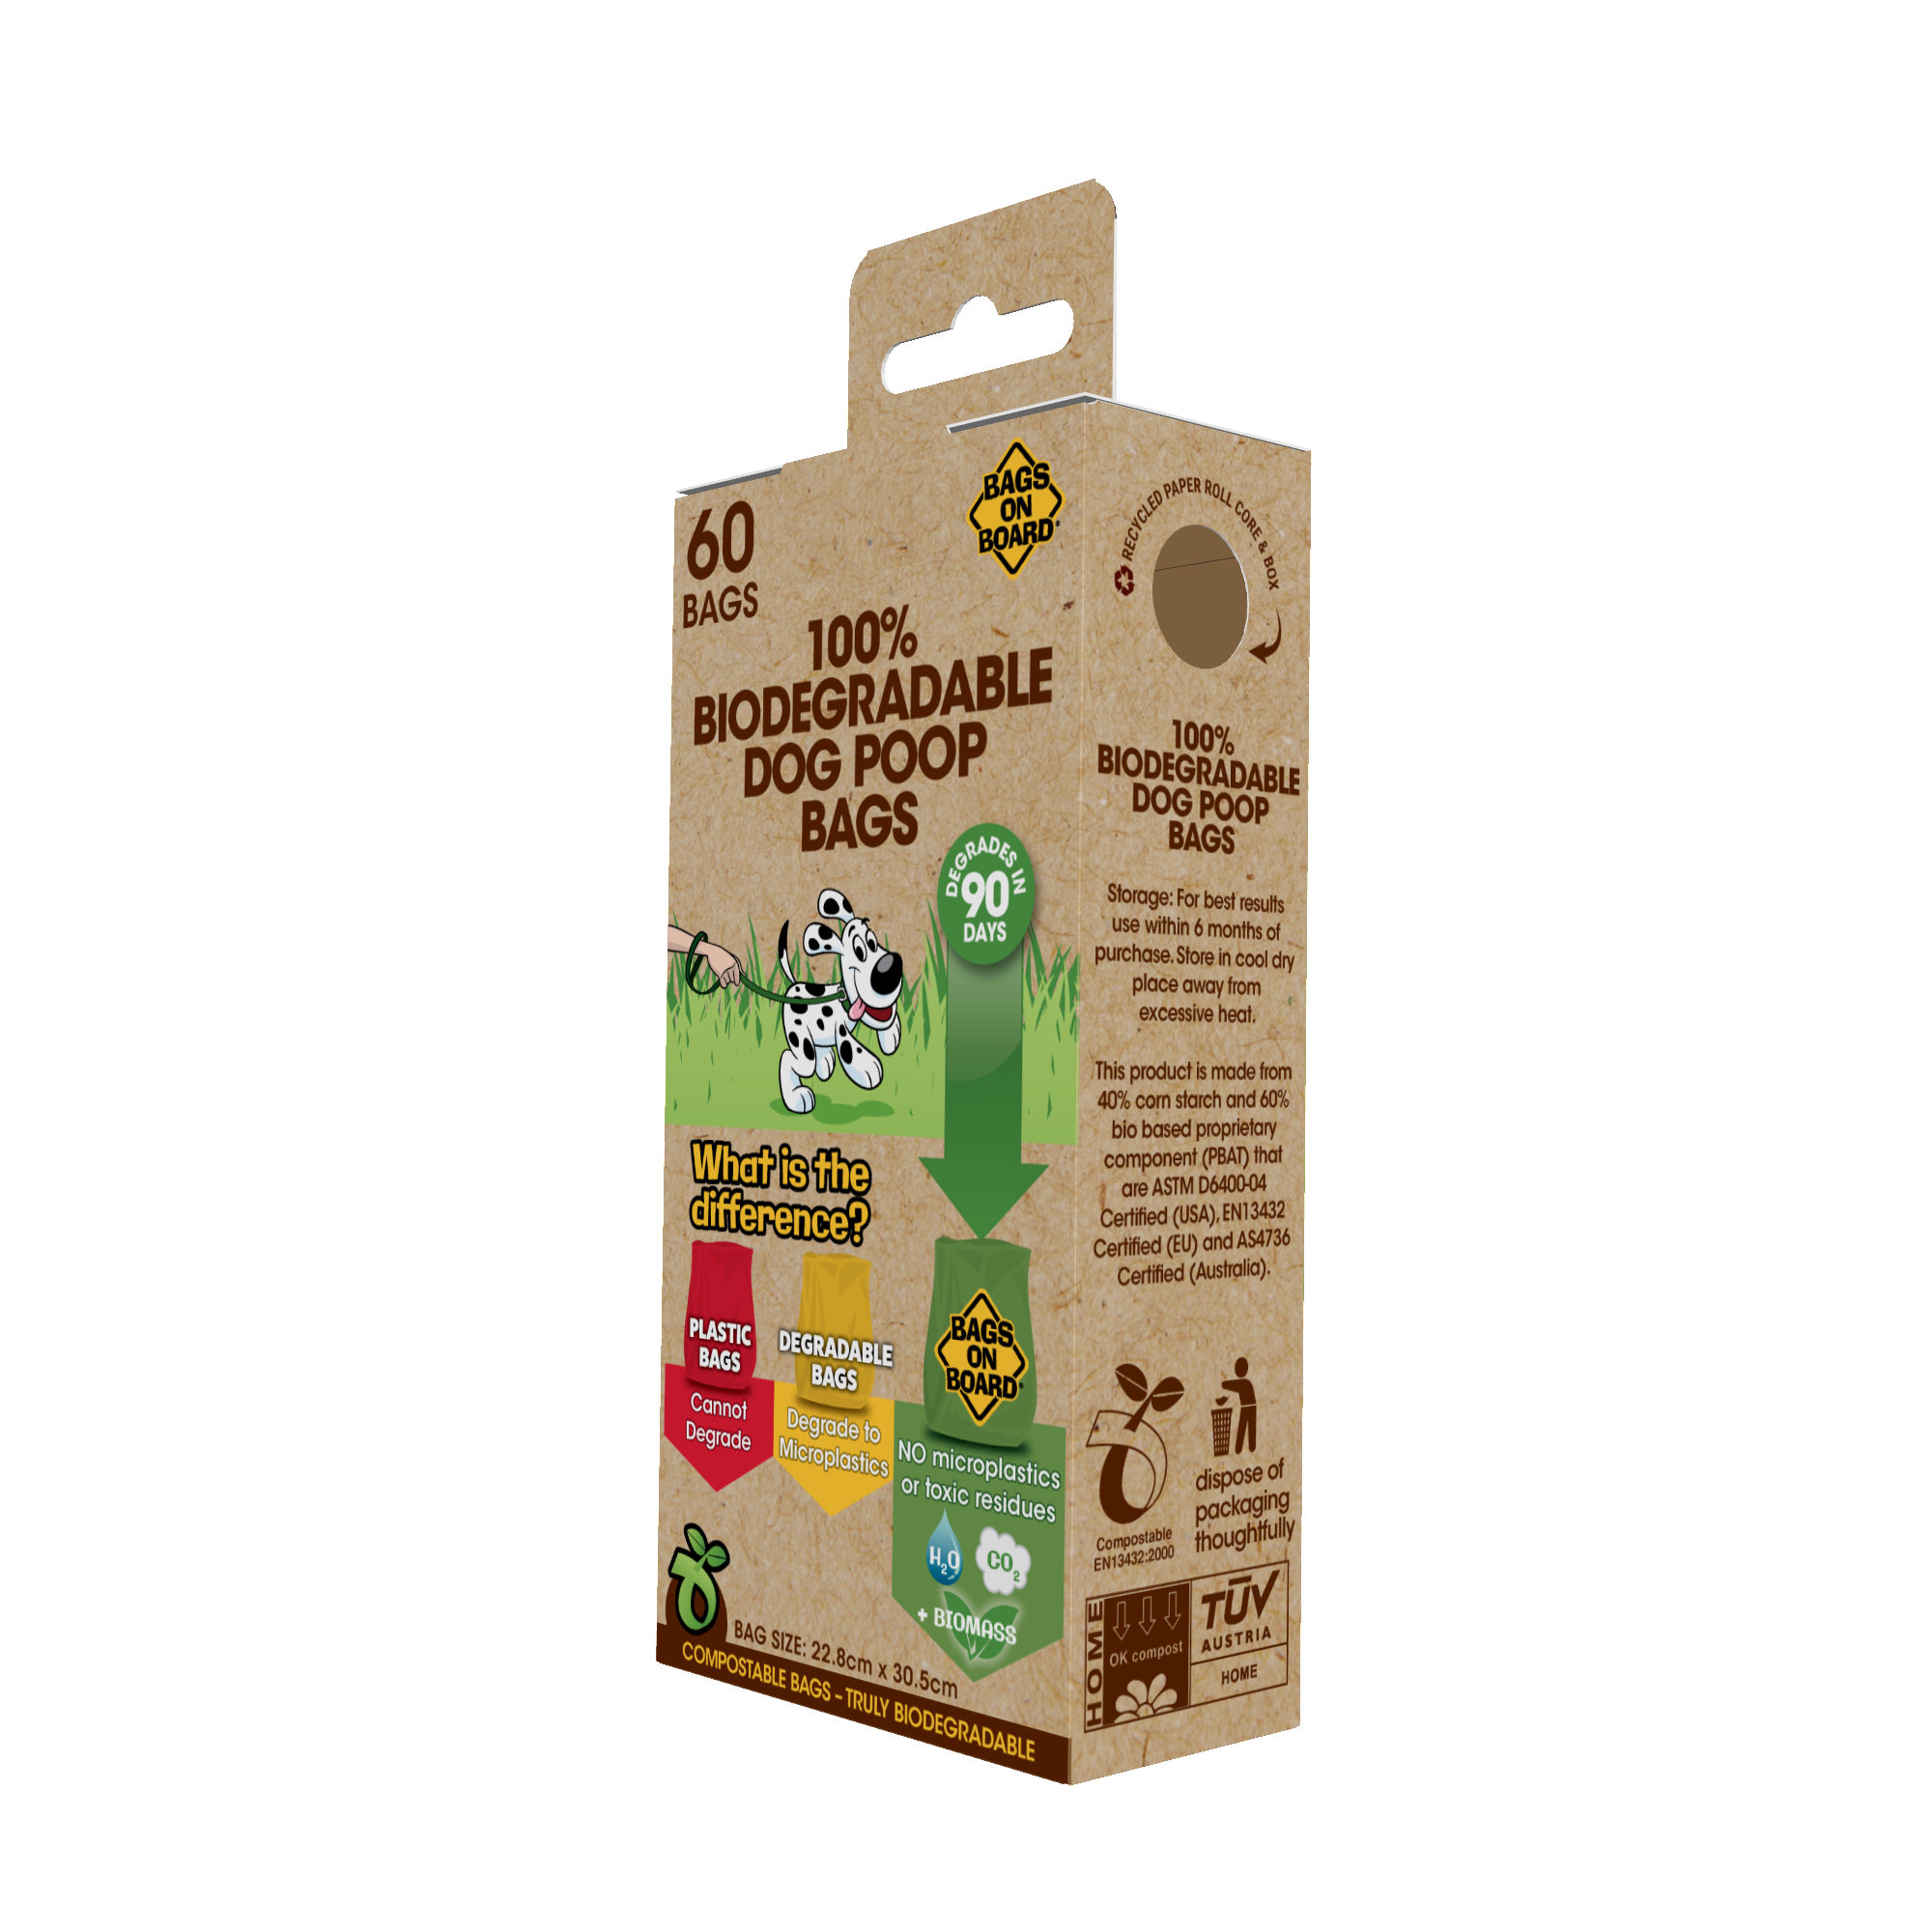 Bags on Board 100% Biodegradable Poop Bags - 60